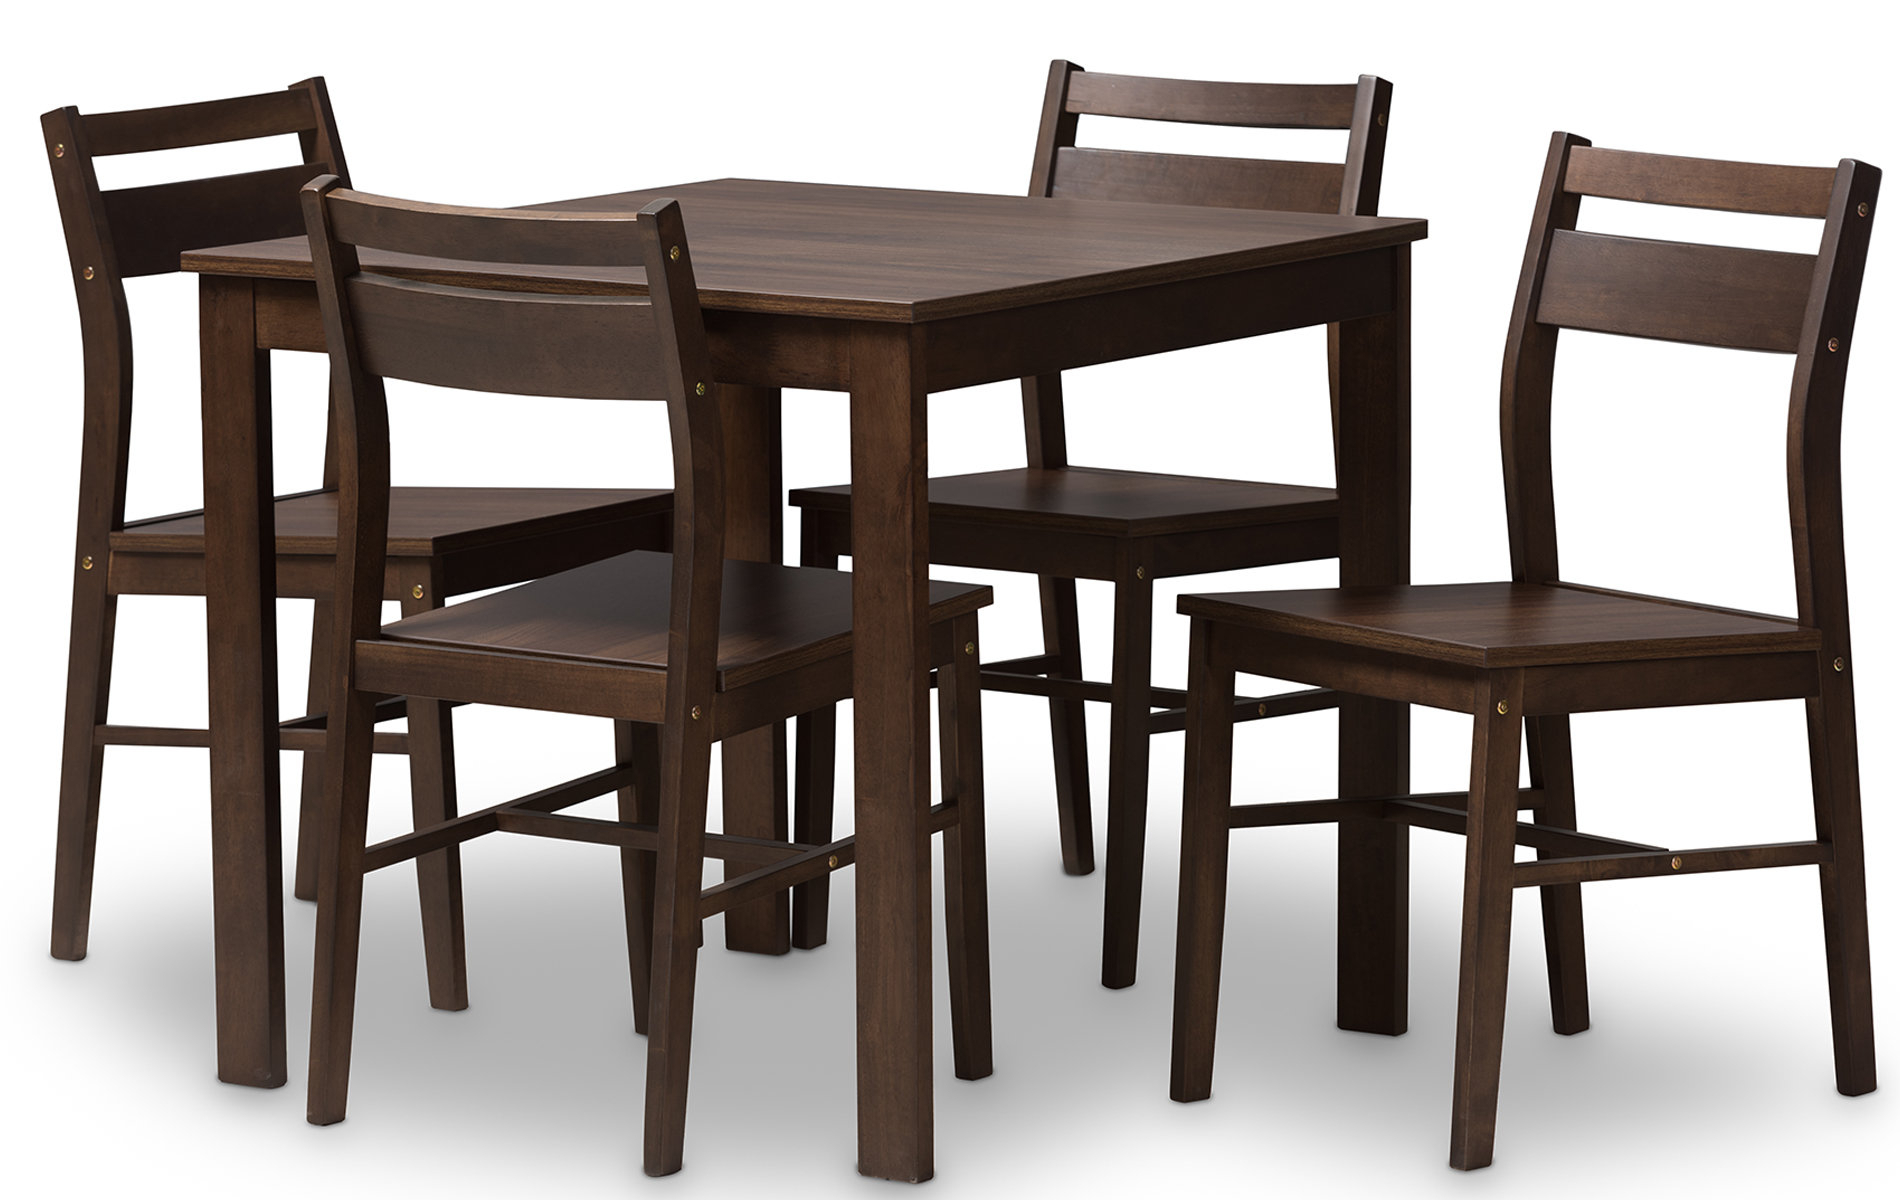 Hersom 5 Piece Dining Set With Regard To Current Bryson 5 Piece Dining Sets (Image 17 of 20)